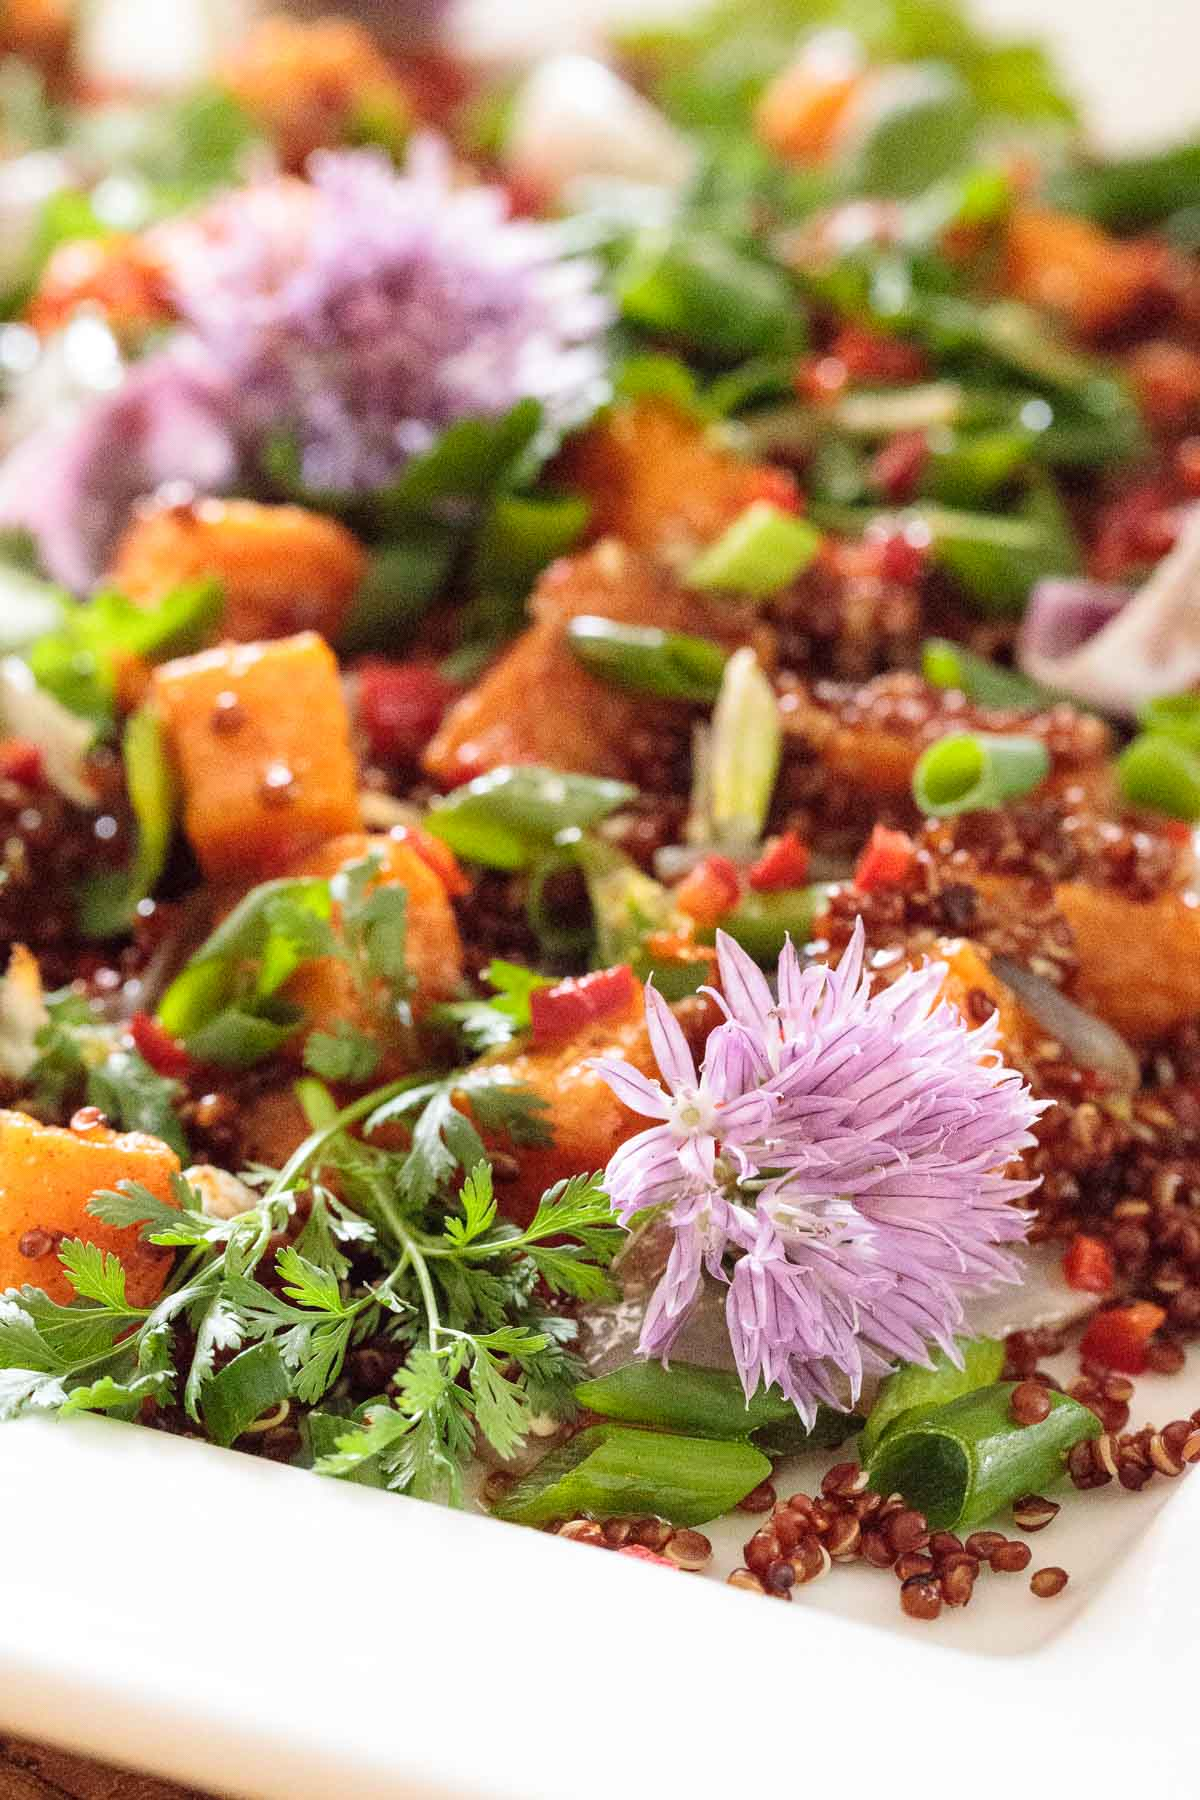 Ultra closeup of a Ballymaloe Quinoa Sweet Potato Salad garnished with chive flowers.